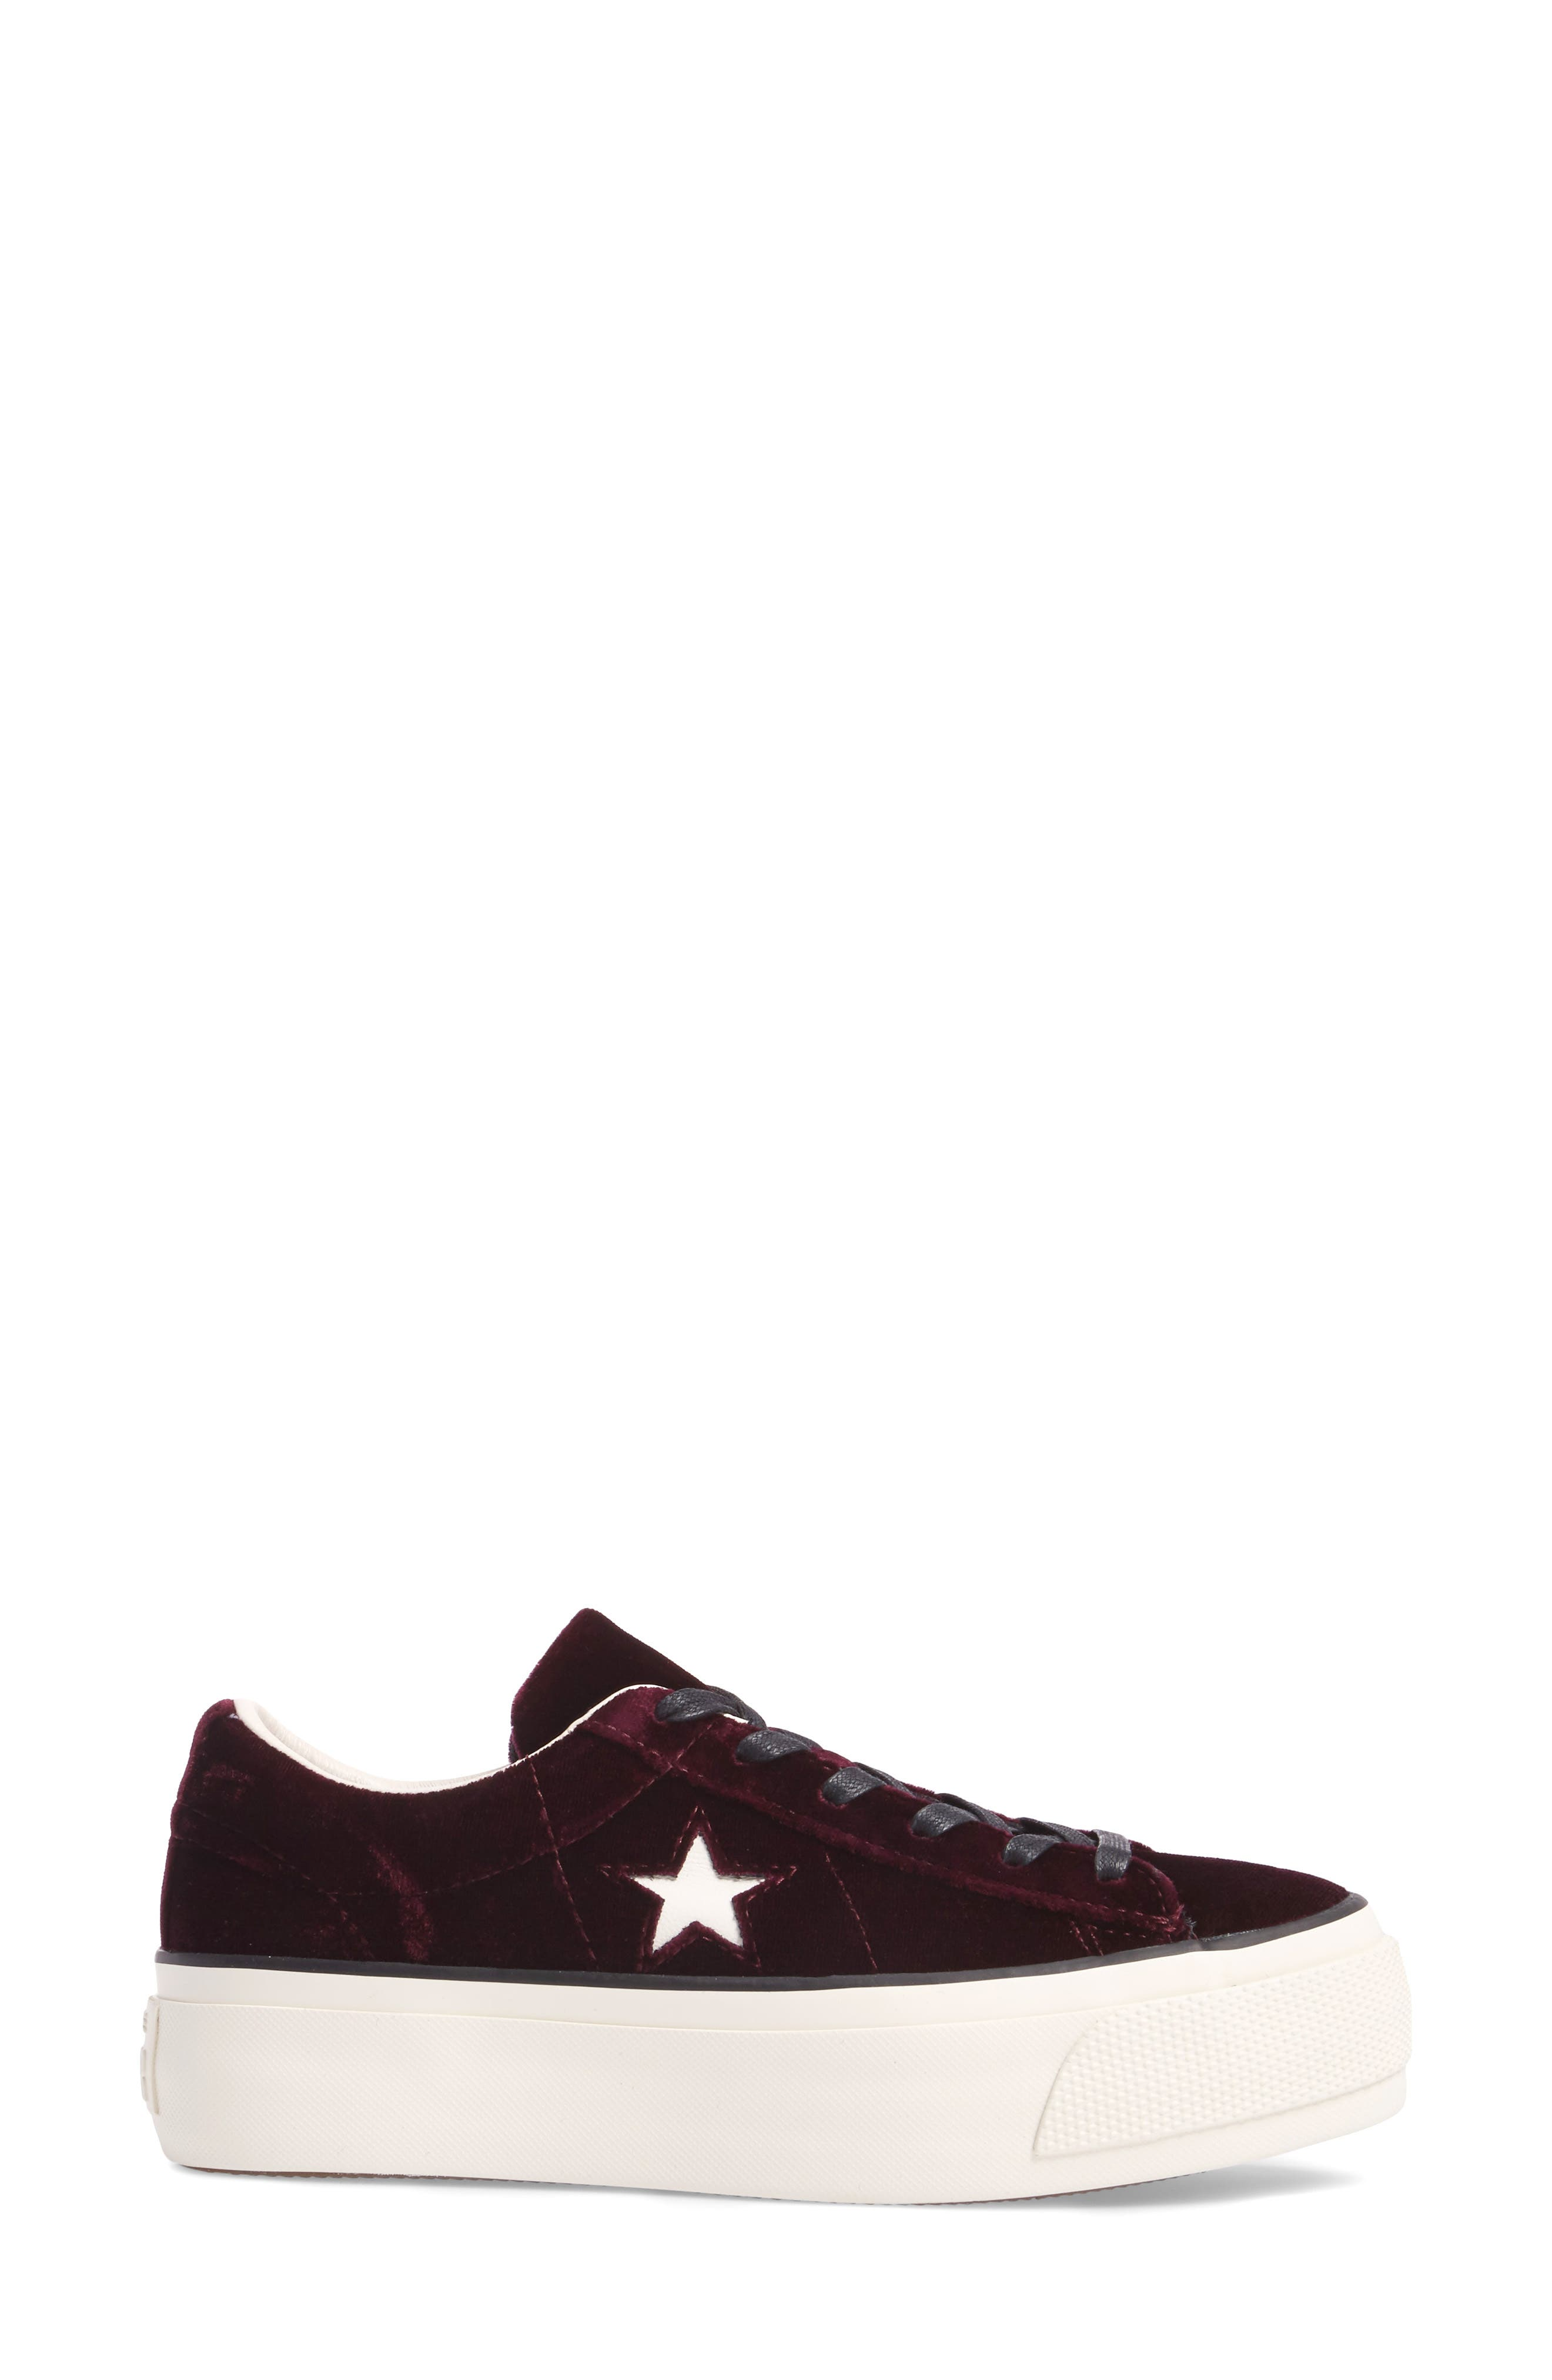 Alternate Image 3  - Converse Chuck Taylor® One Star Platform Sneaker (Women)